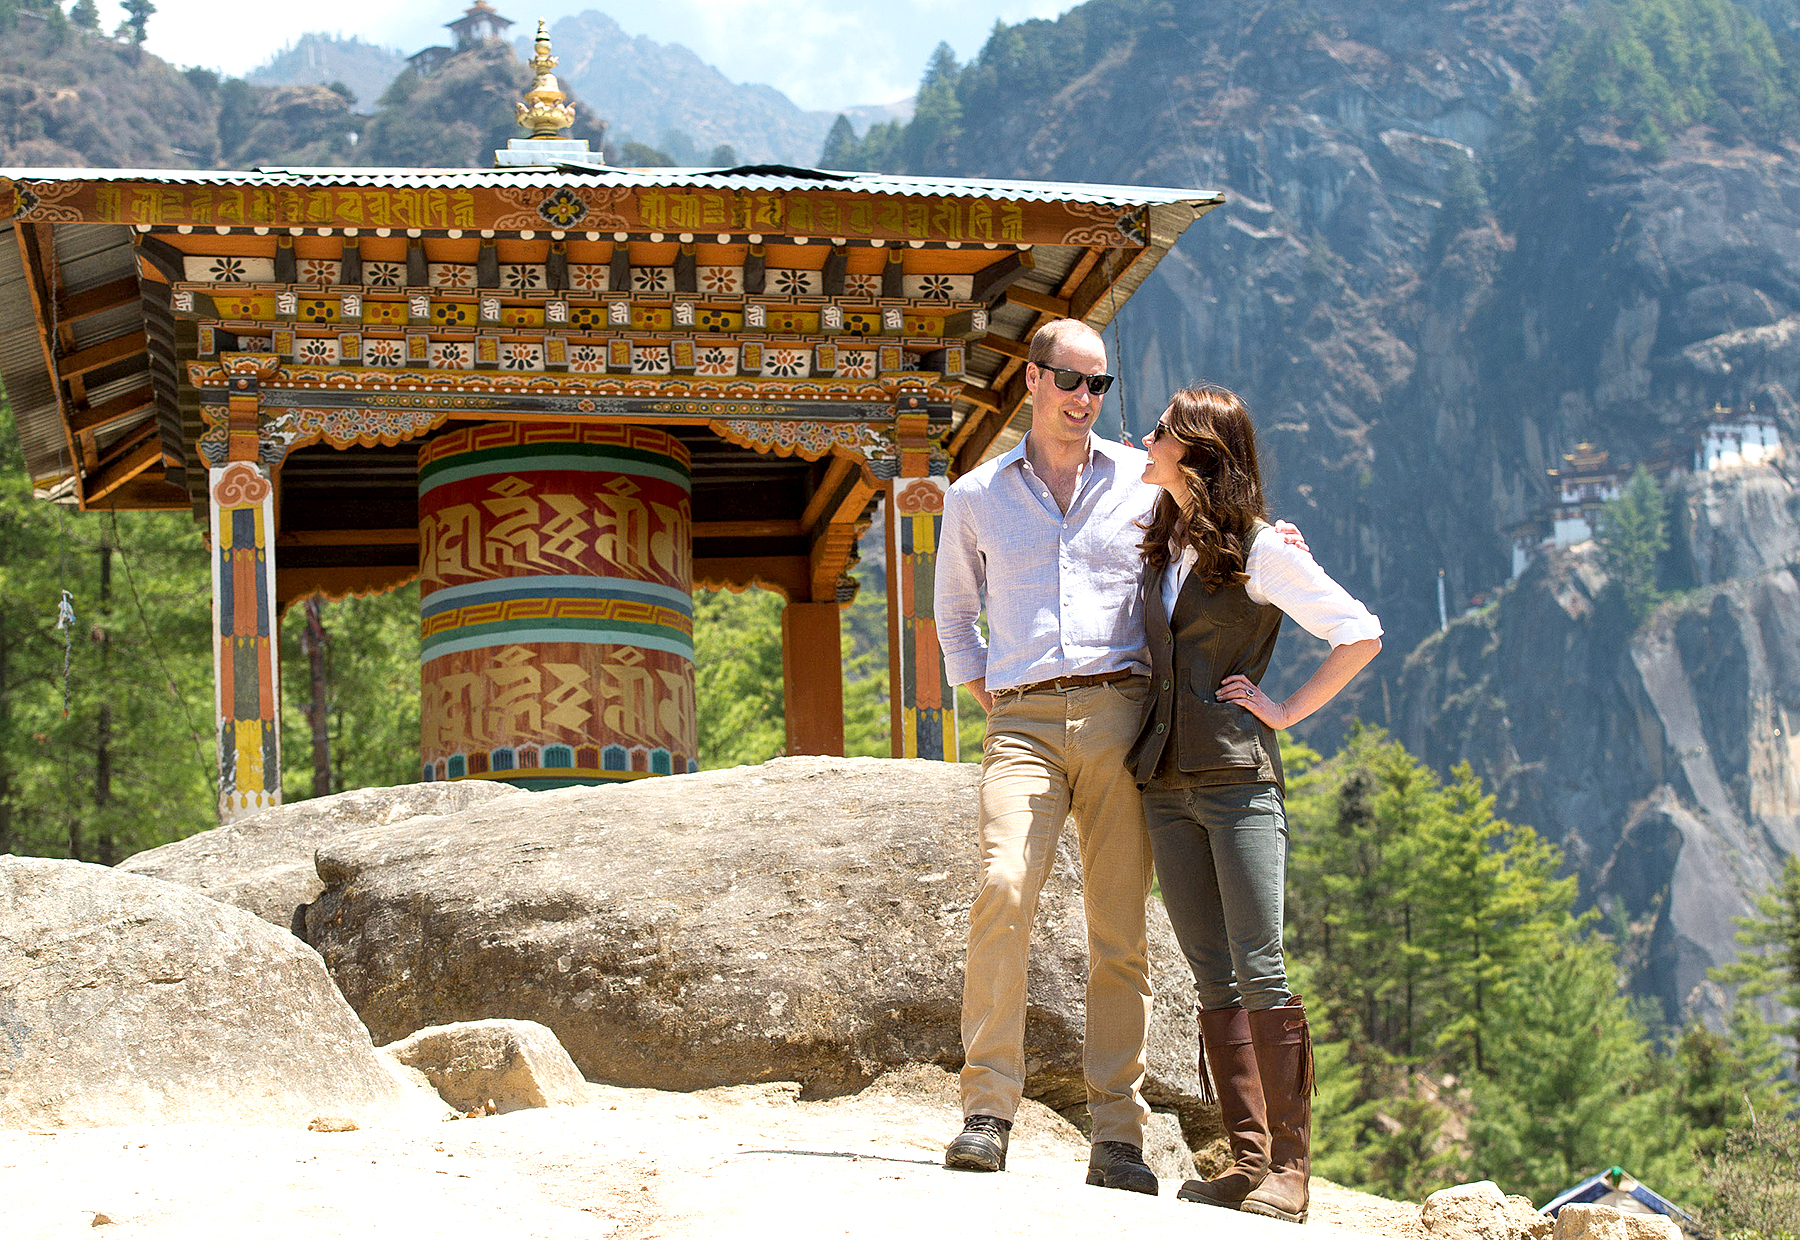 Prince William, Duke of Cambridge and Catherine, Duchess of Cambridge half way on their hike to Paro Taktsang, the Tiger's Nest monastery on April 15, 2016 in Paro, Bhutan.